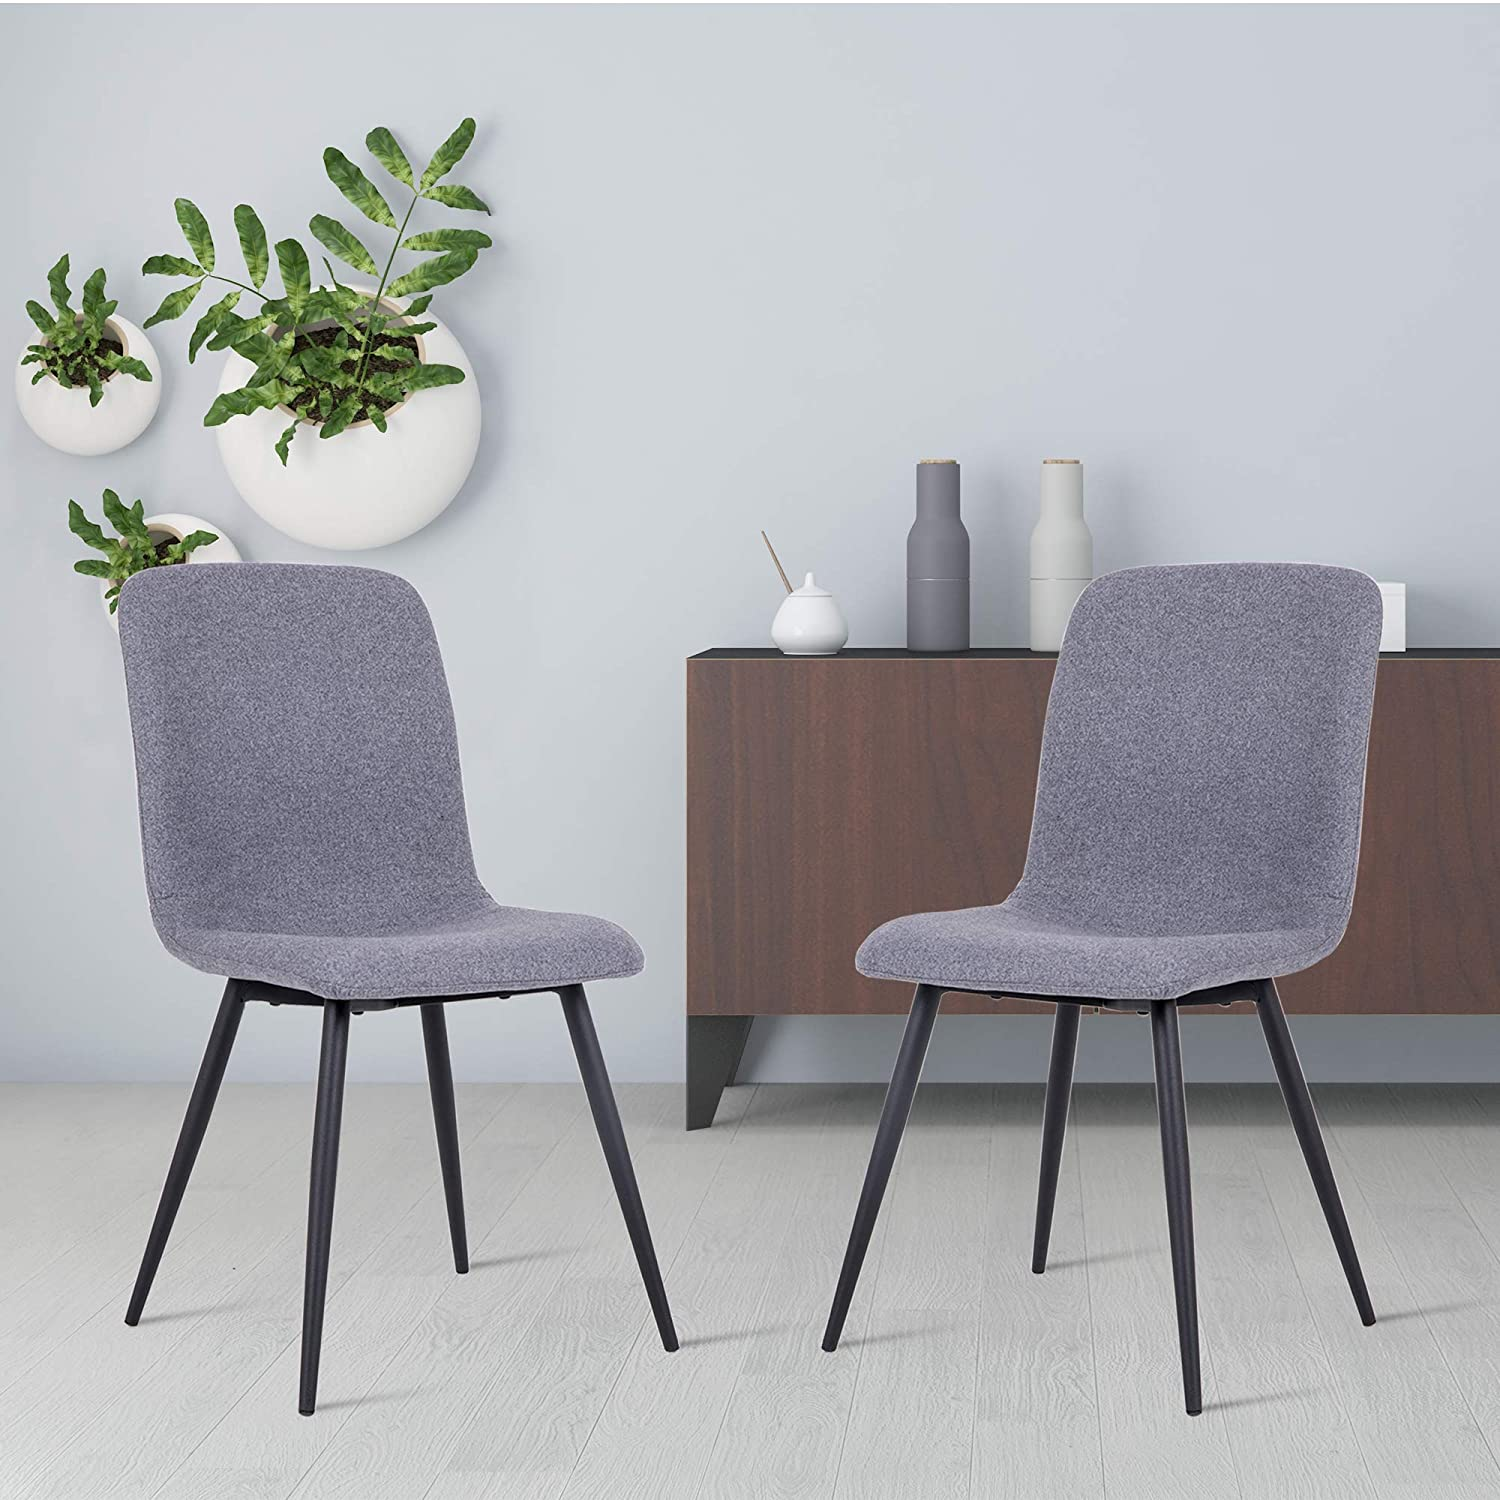 DAGONHIL Modern Dining Chairs for Kitchen,Elegant Velvet Back and Cushion,Mid Century Modern Side Chairs with Sturdy Metal Legs Set of 2 Gray